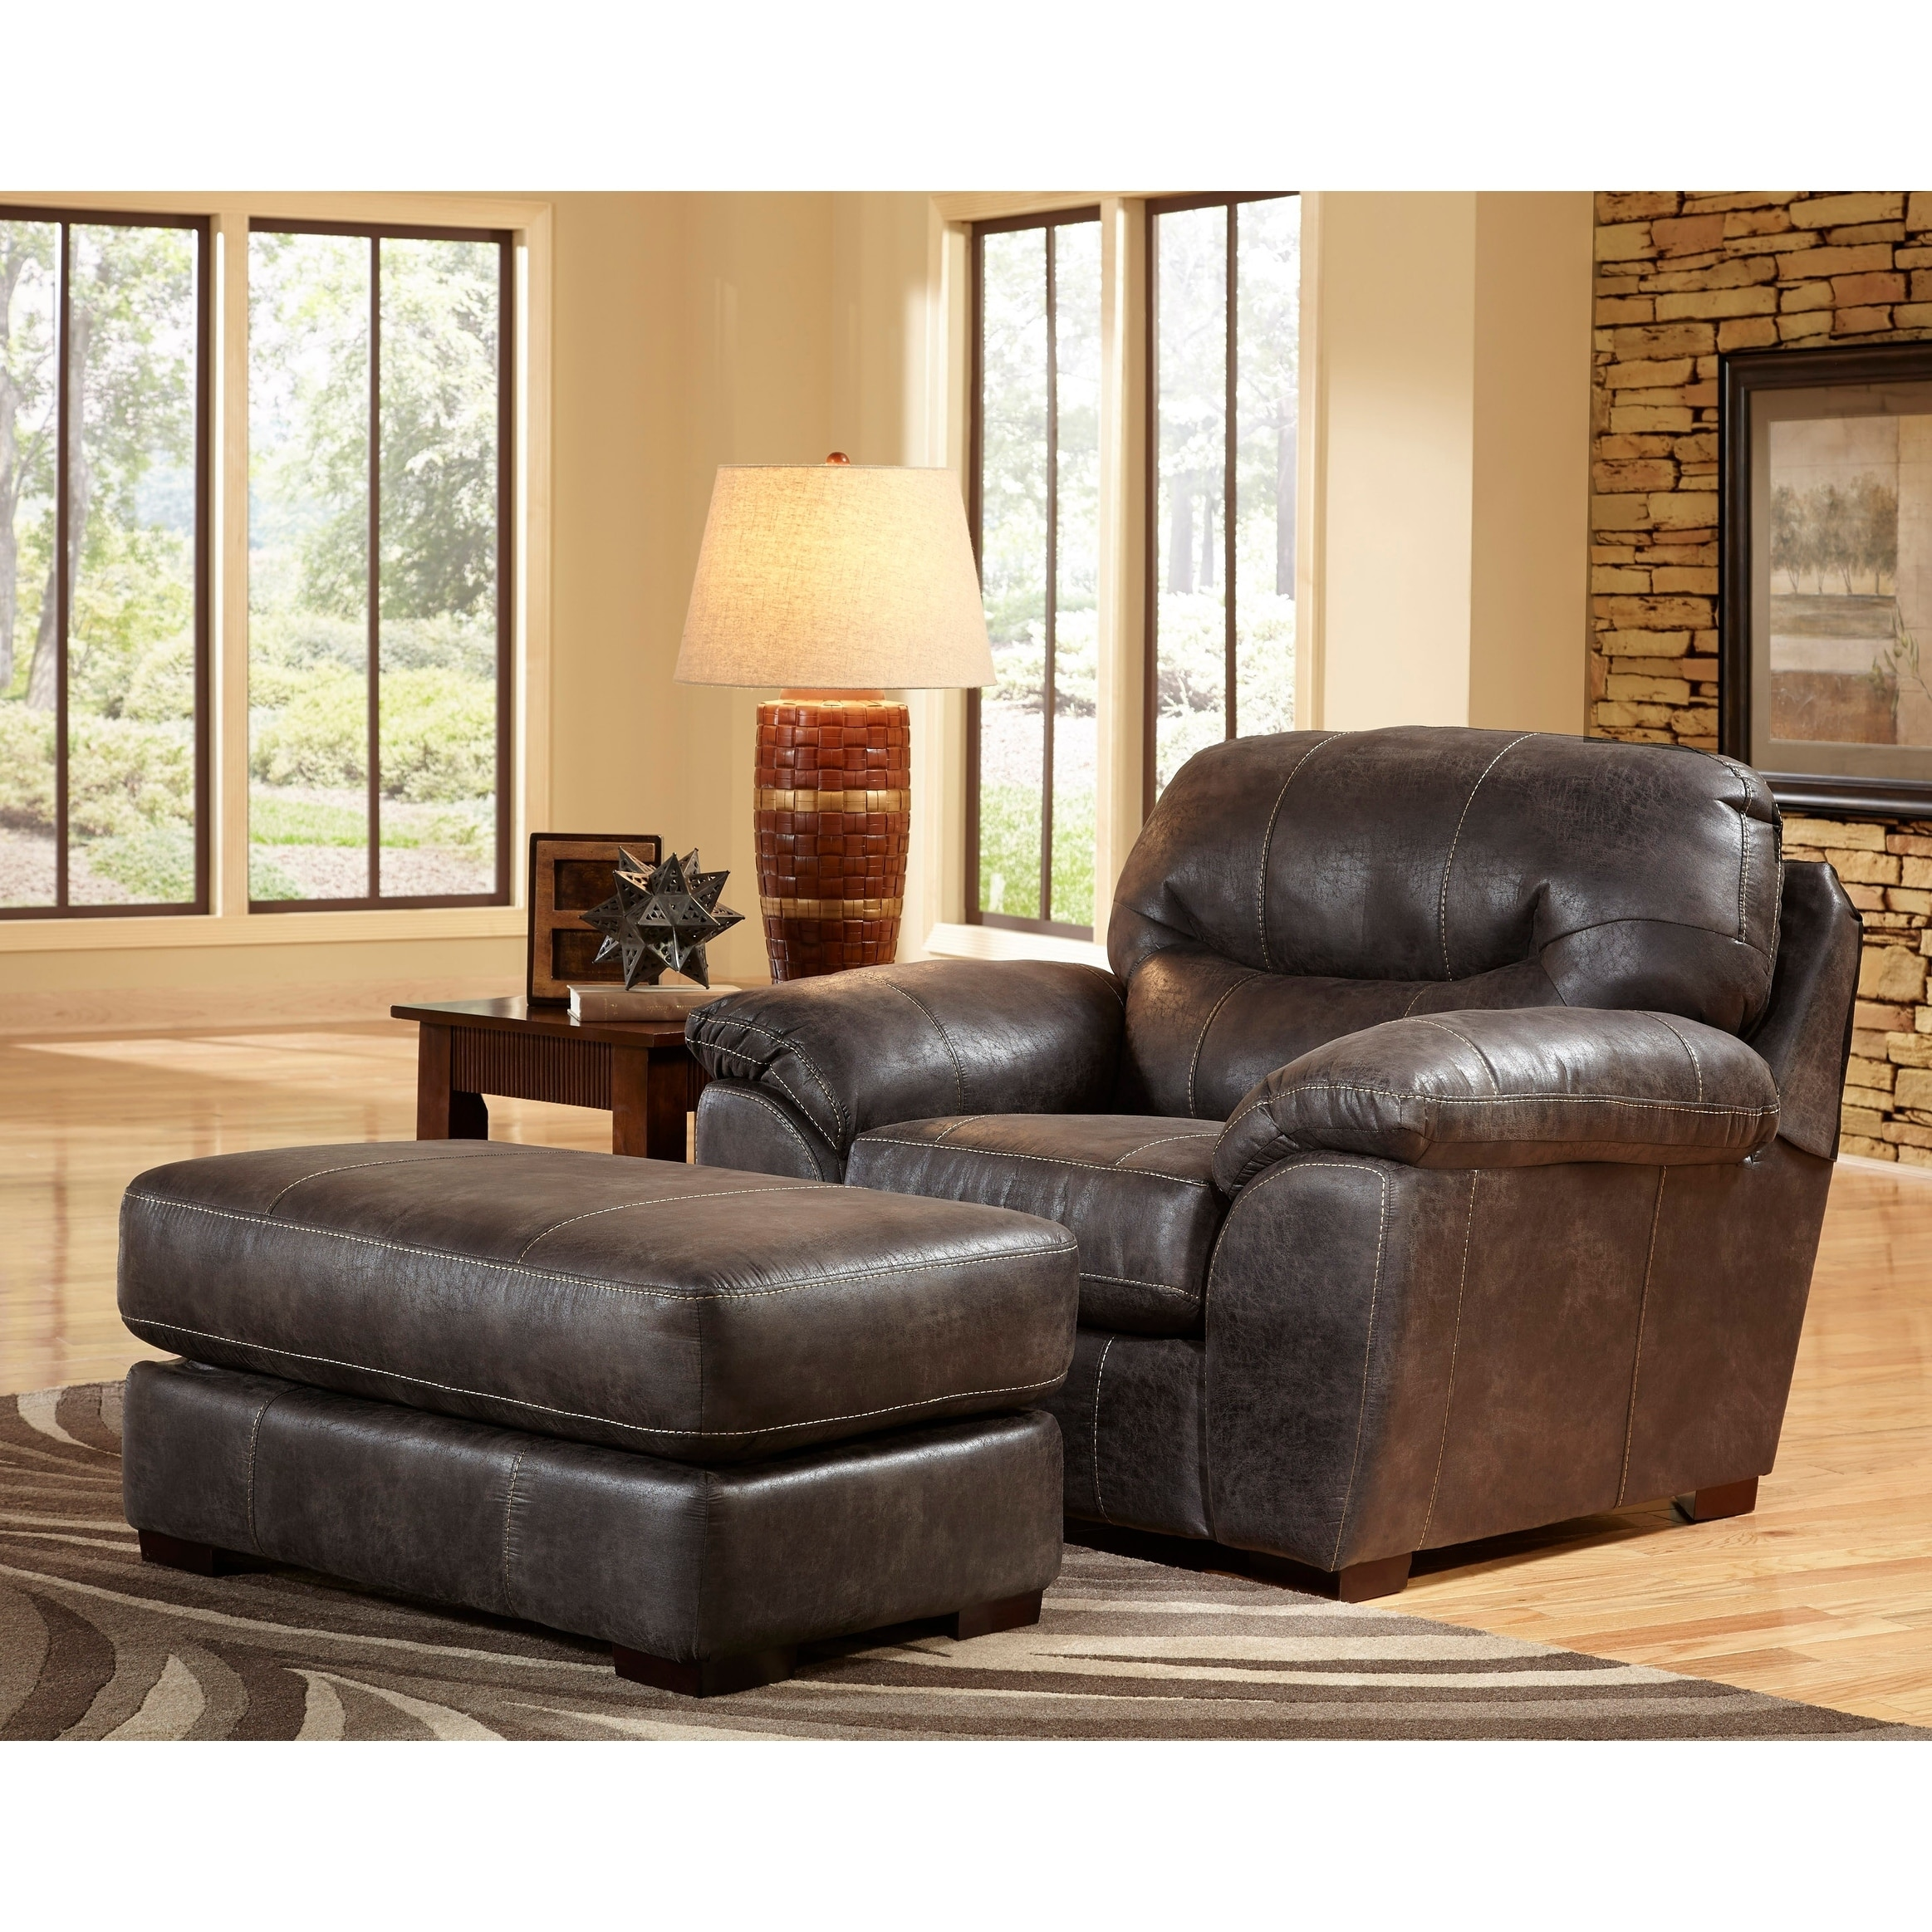 Copper Grove Monnickendam Faux Leather Chair And Ottoman Living Room Set